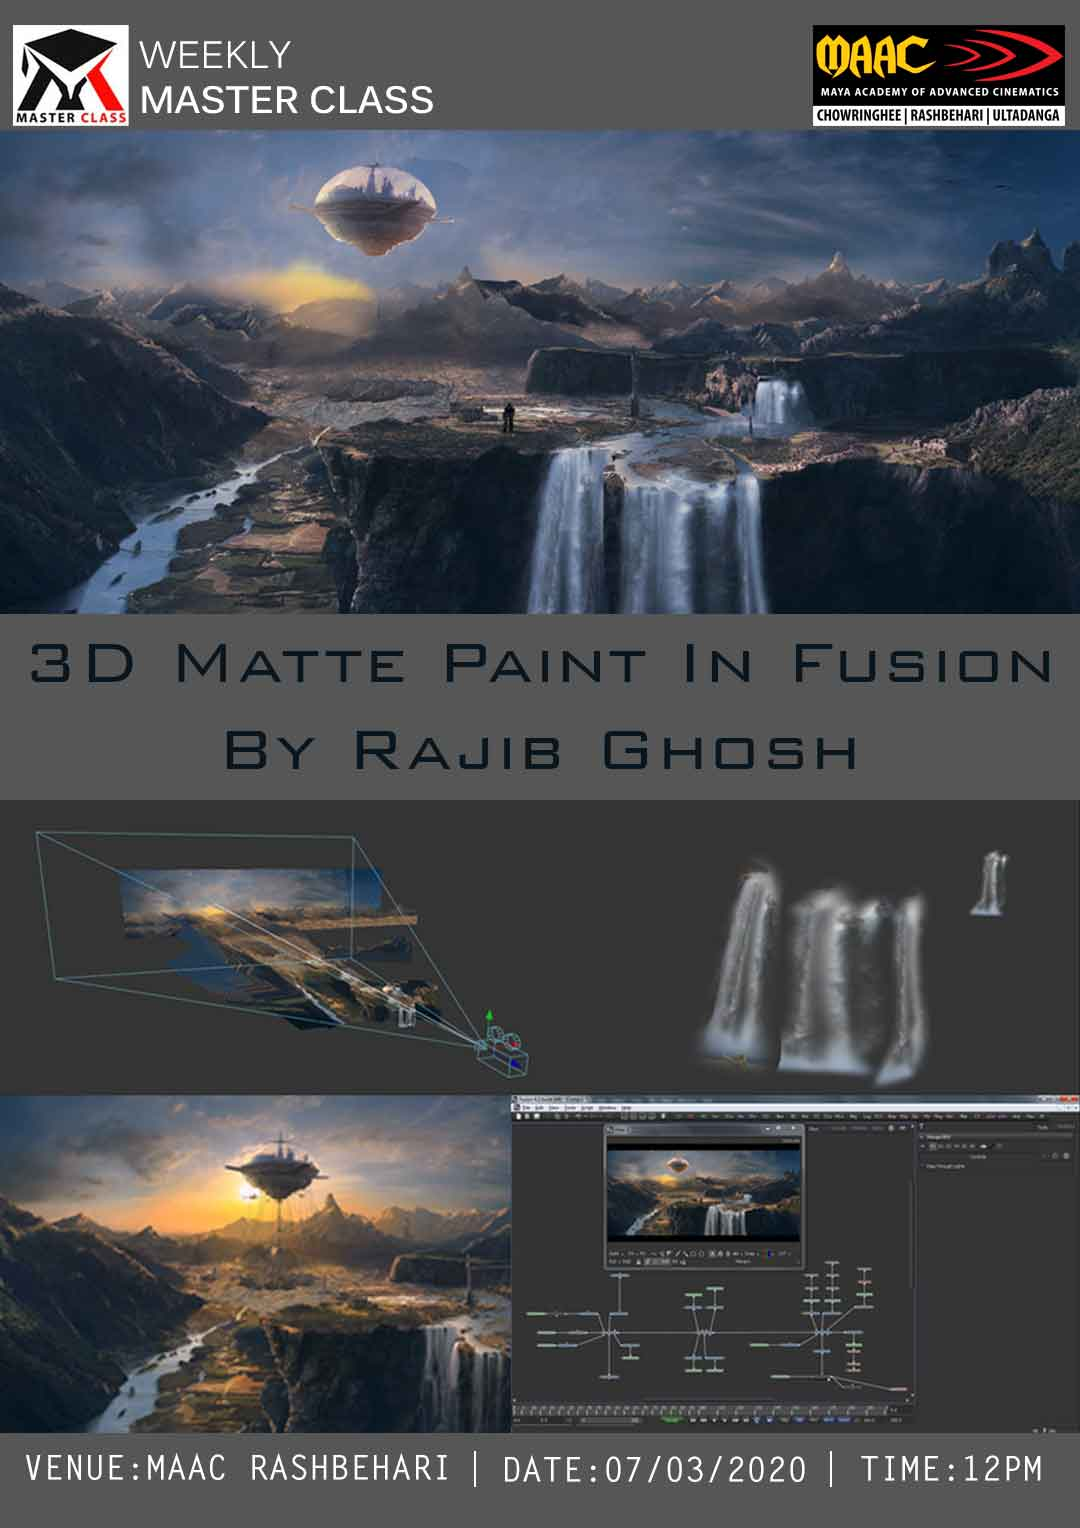 Weekly Master Class on 3D Matte Paint In Fusion